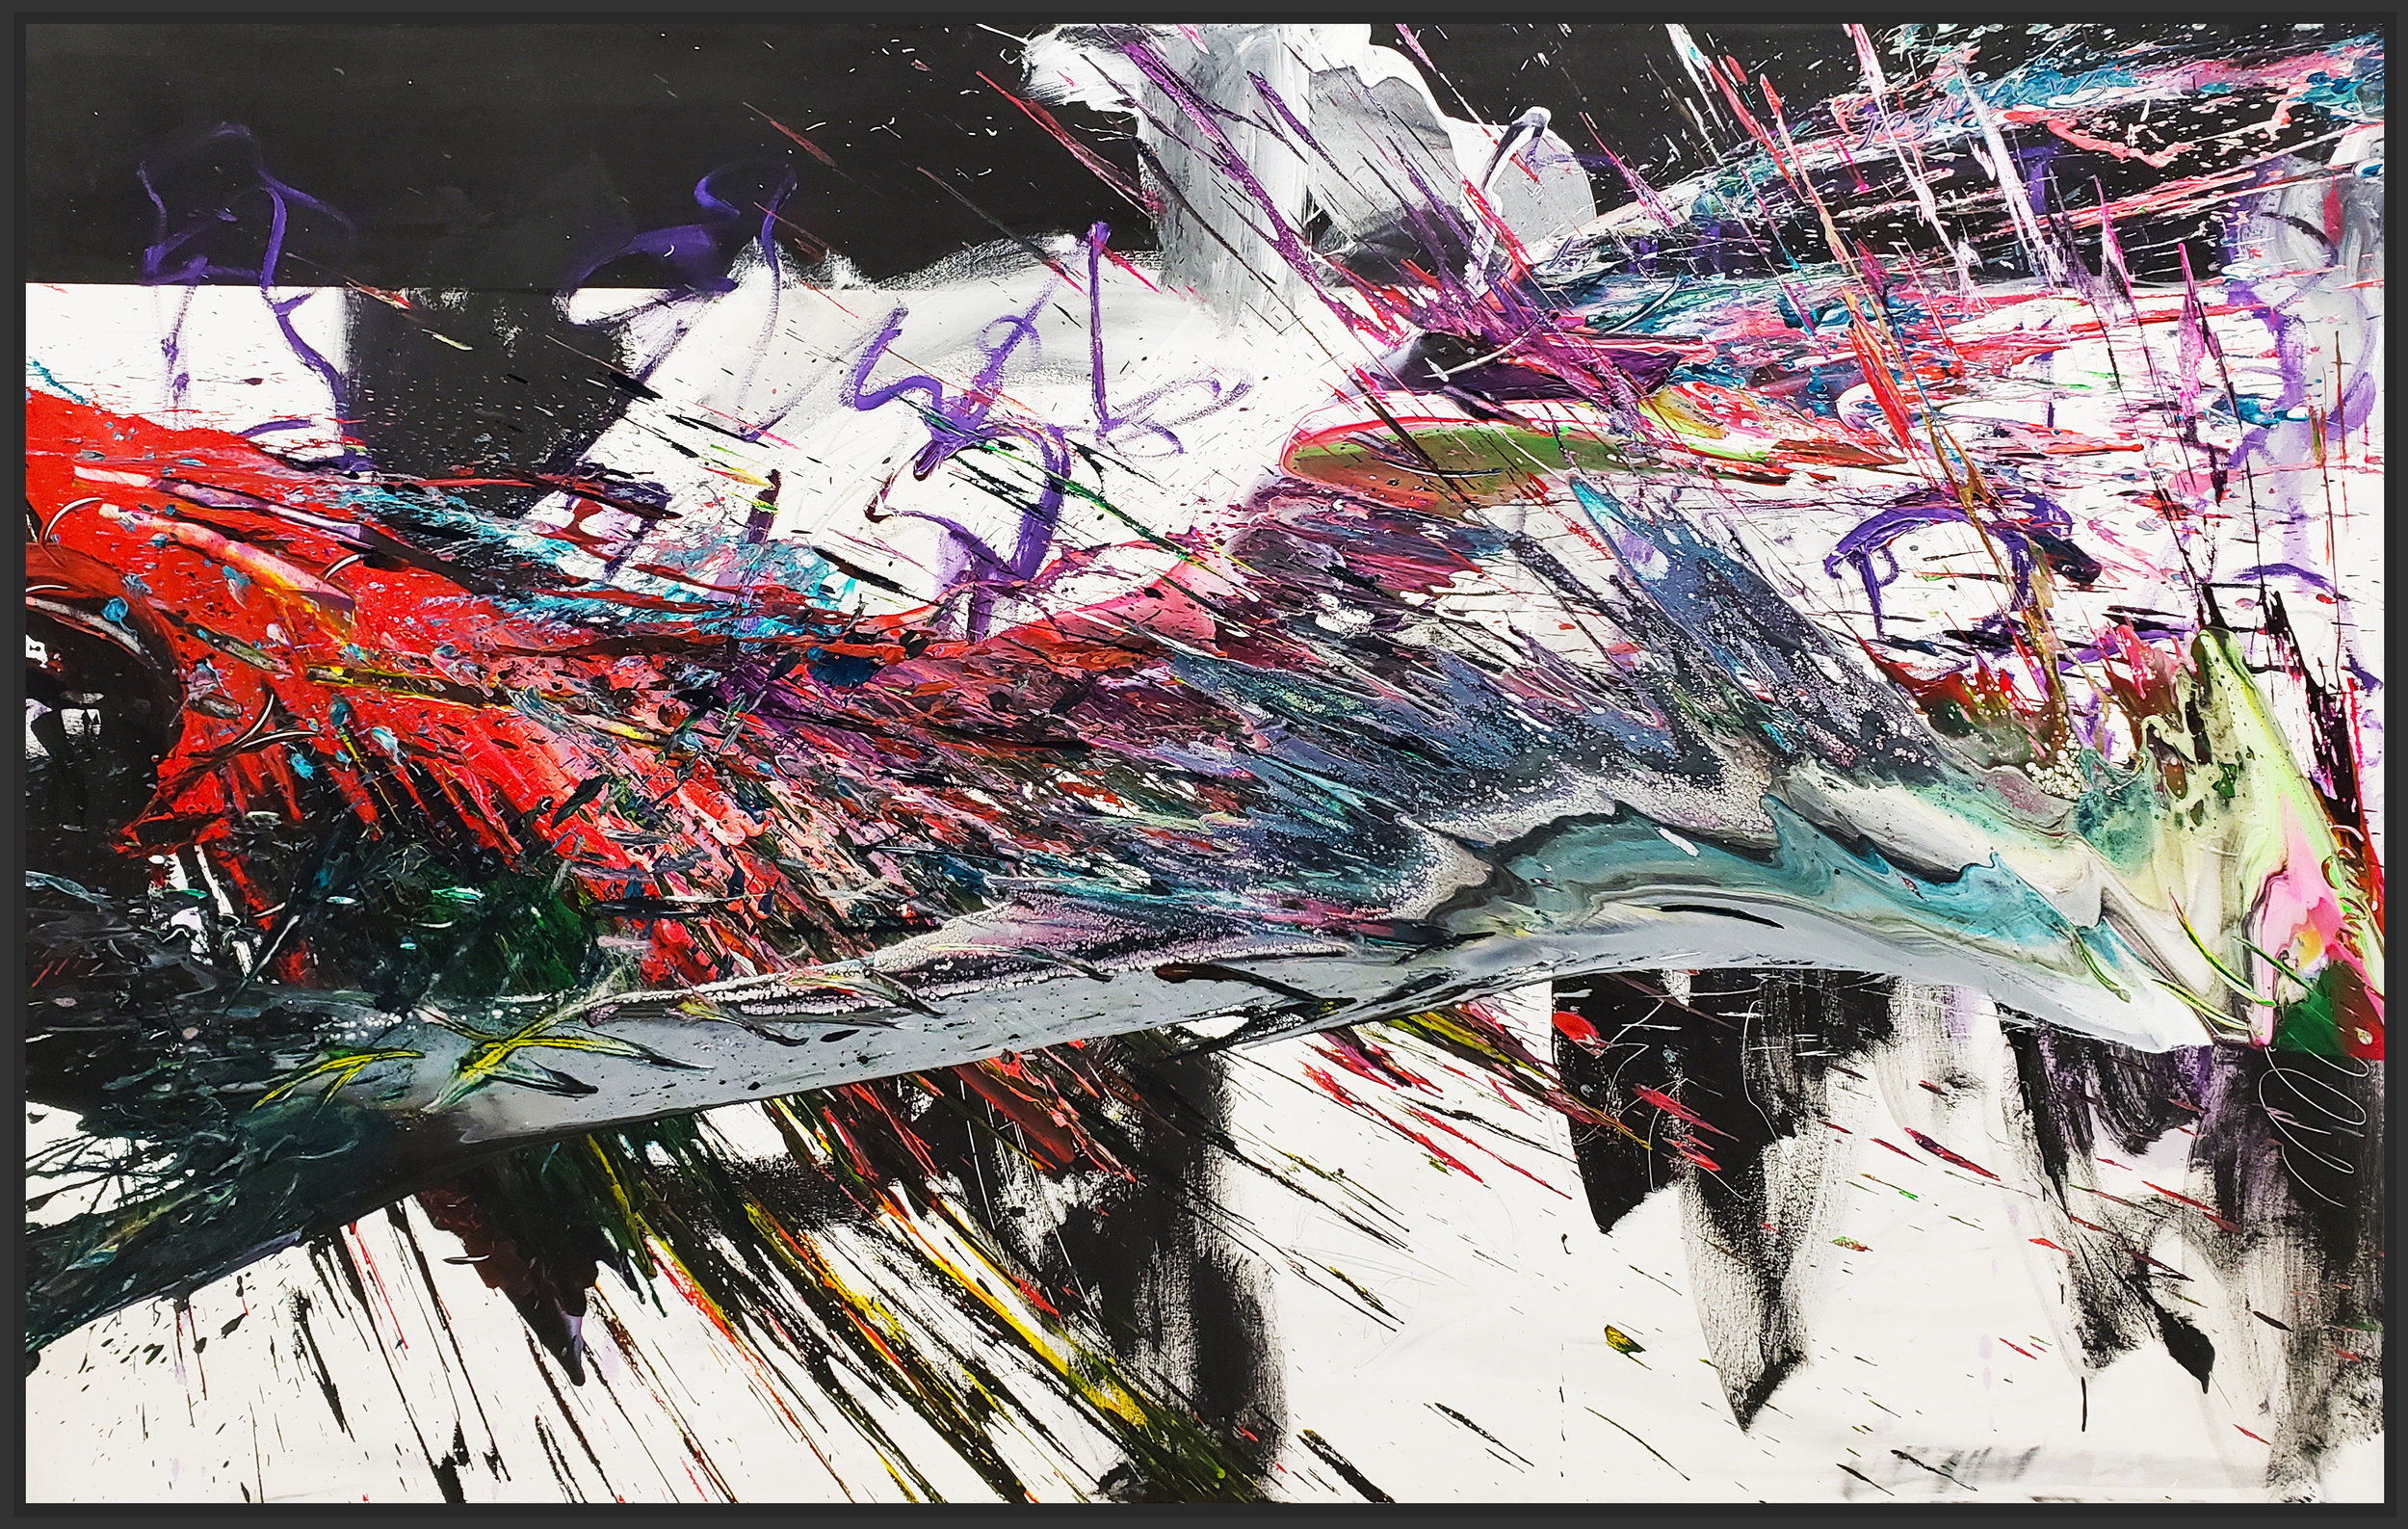 "SP2 #142, 2019, acrylic on canvas, 48"" x 84"" (122 x 213.4 cm)"